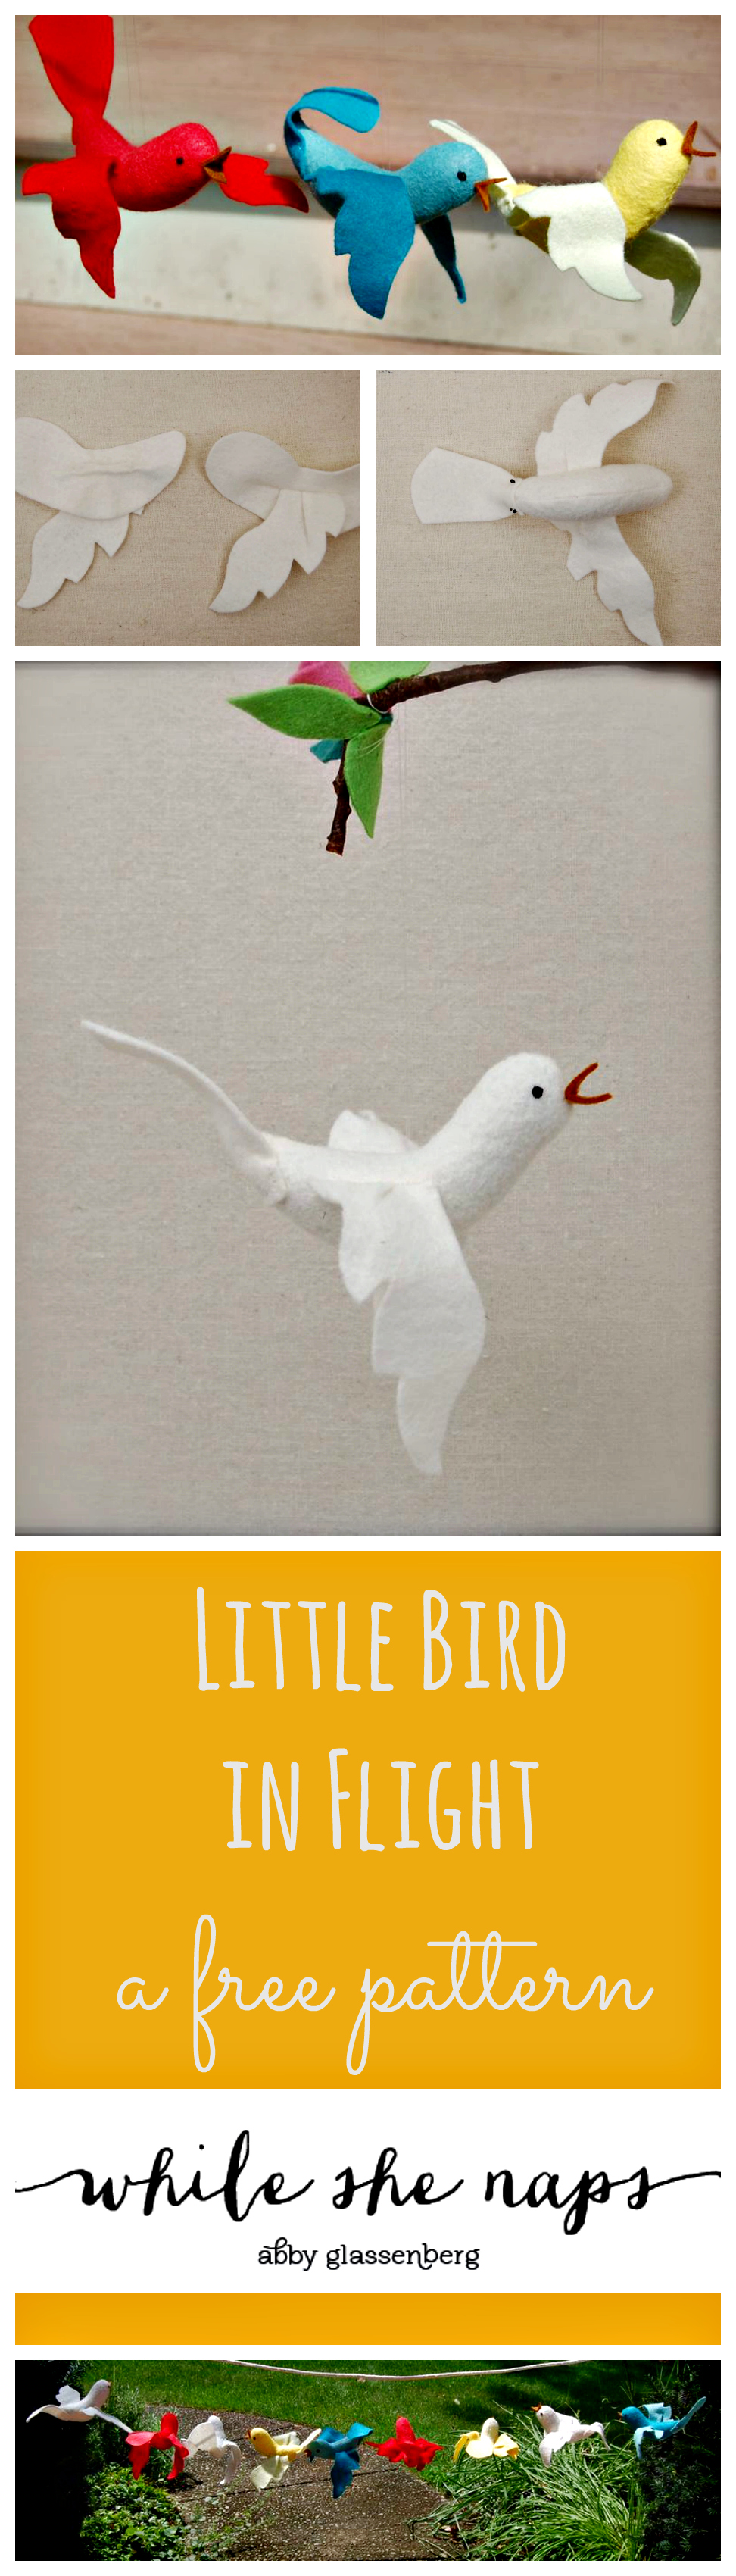 Little Bird in Flight, a free pattern.